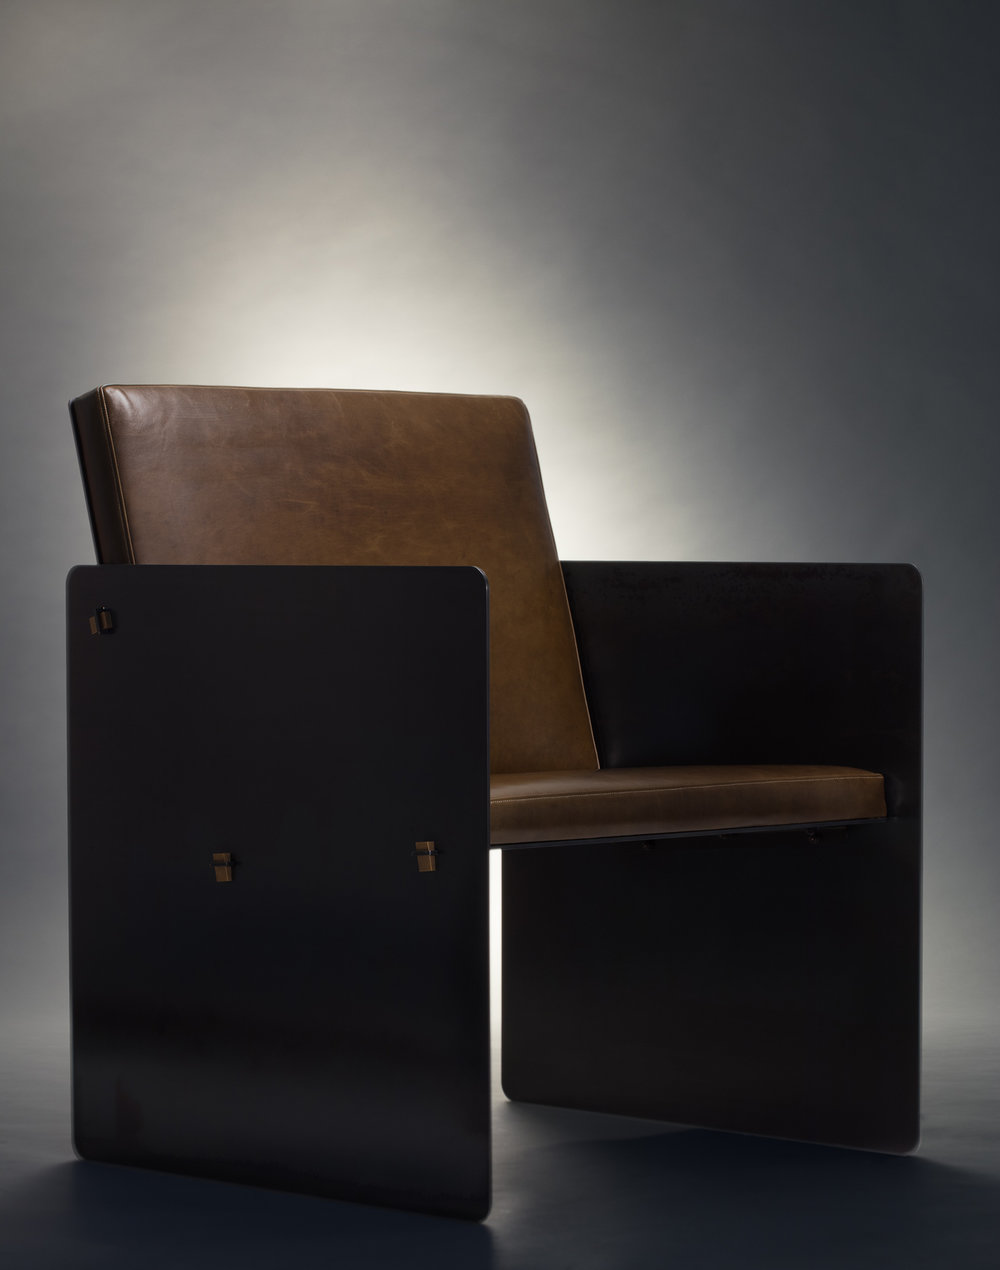 APD Argosy Product Division Plate Chair  Industrial & modern product design for contemporary interiors. We believe in quality, simplicity, craftsmanship, and attention to detail.